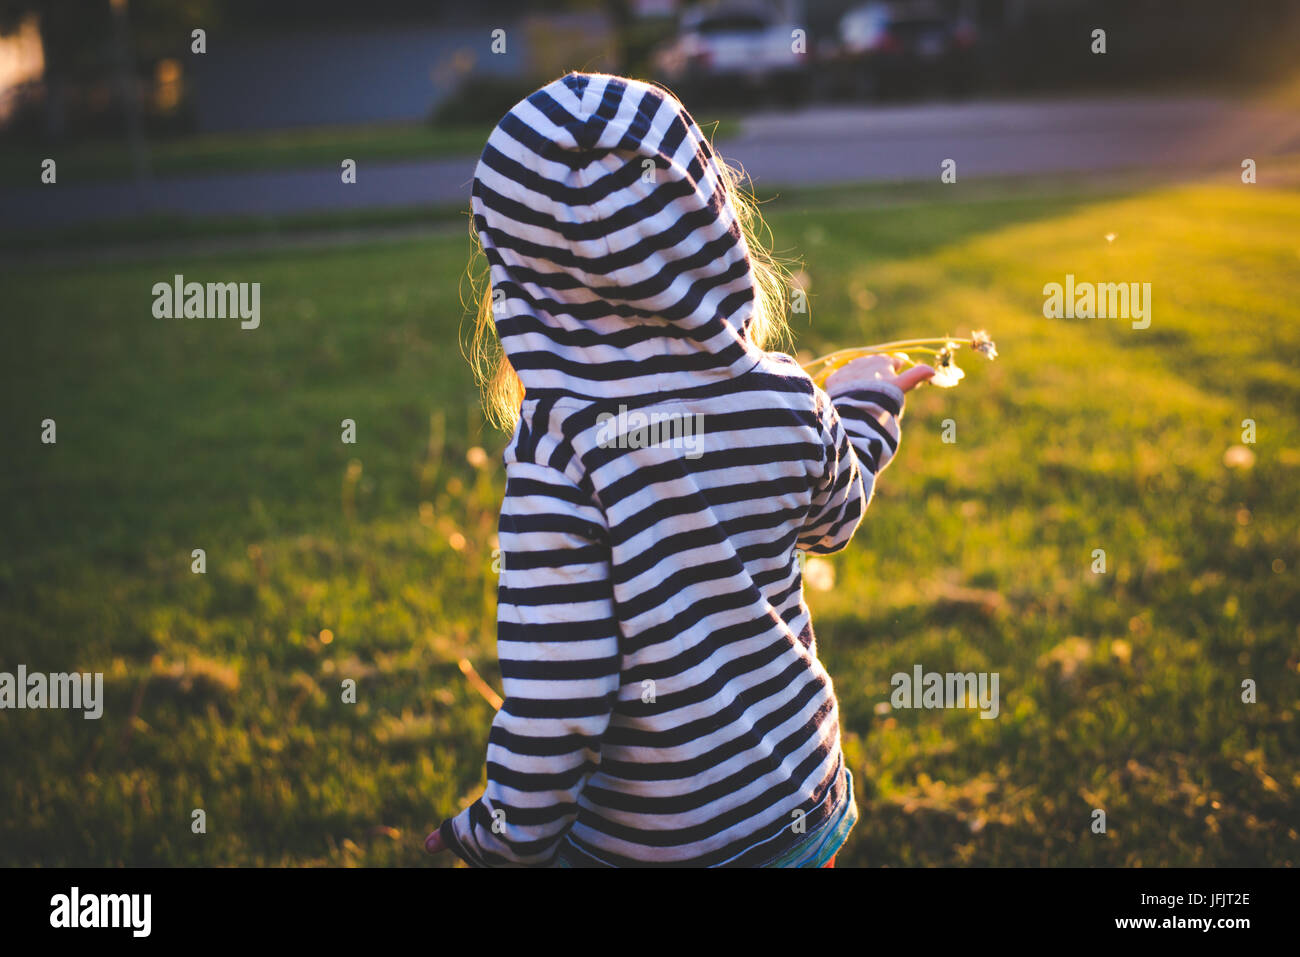 A toddler holds a dandelion in the sunlight with the toddler standing with back to camera. - Stock Image